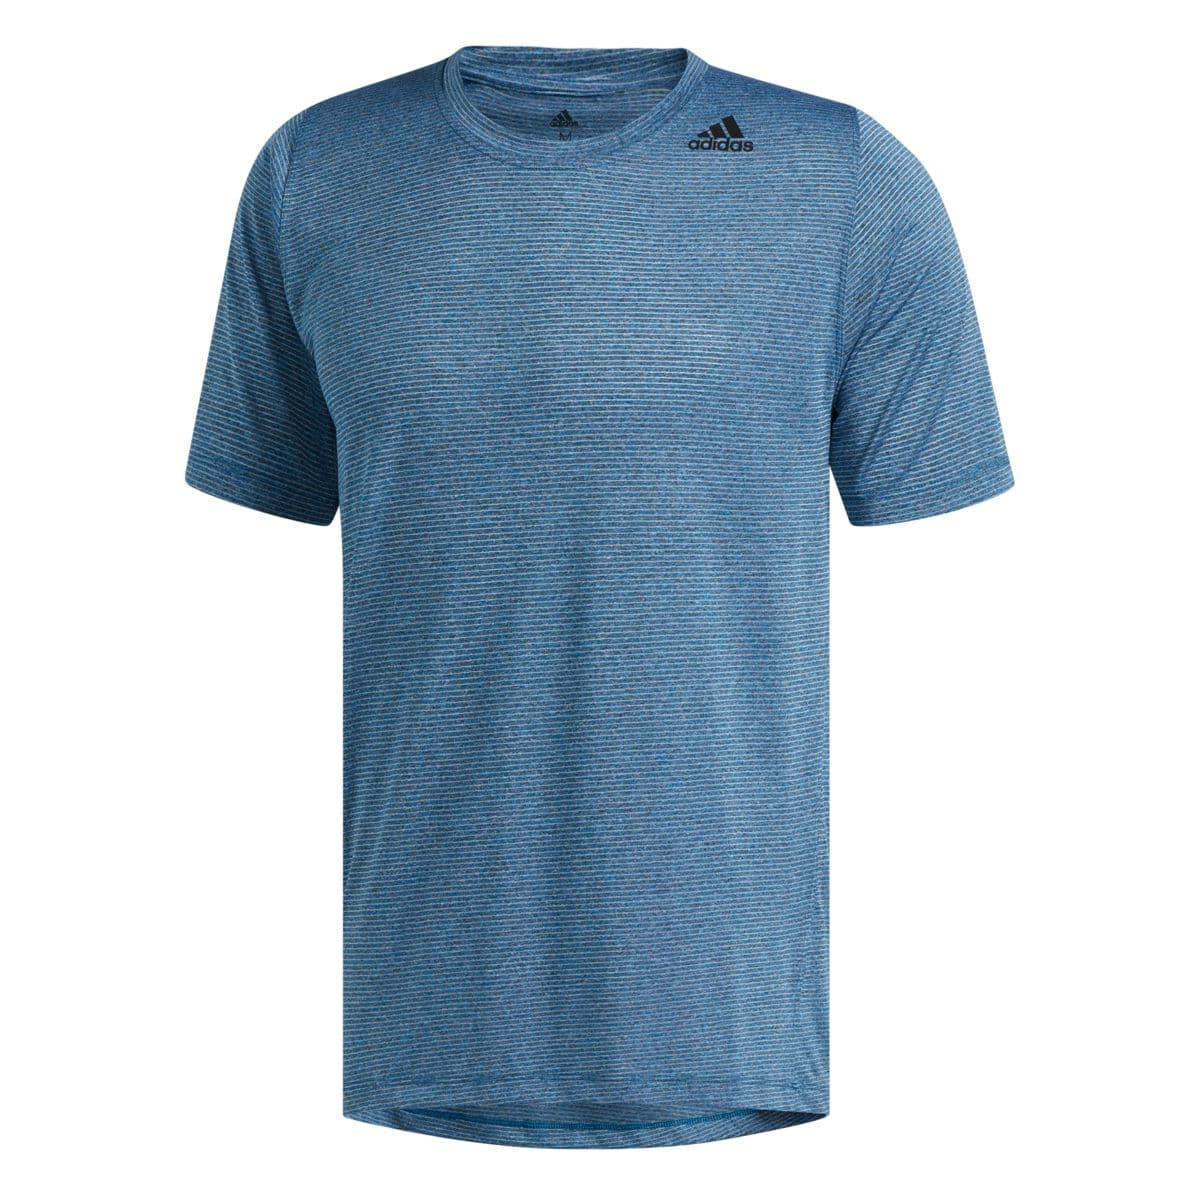 Shirt Climacool Pour Homme Adidas Fitted Tech Tee Freelift Migros xvwfqXUA